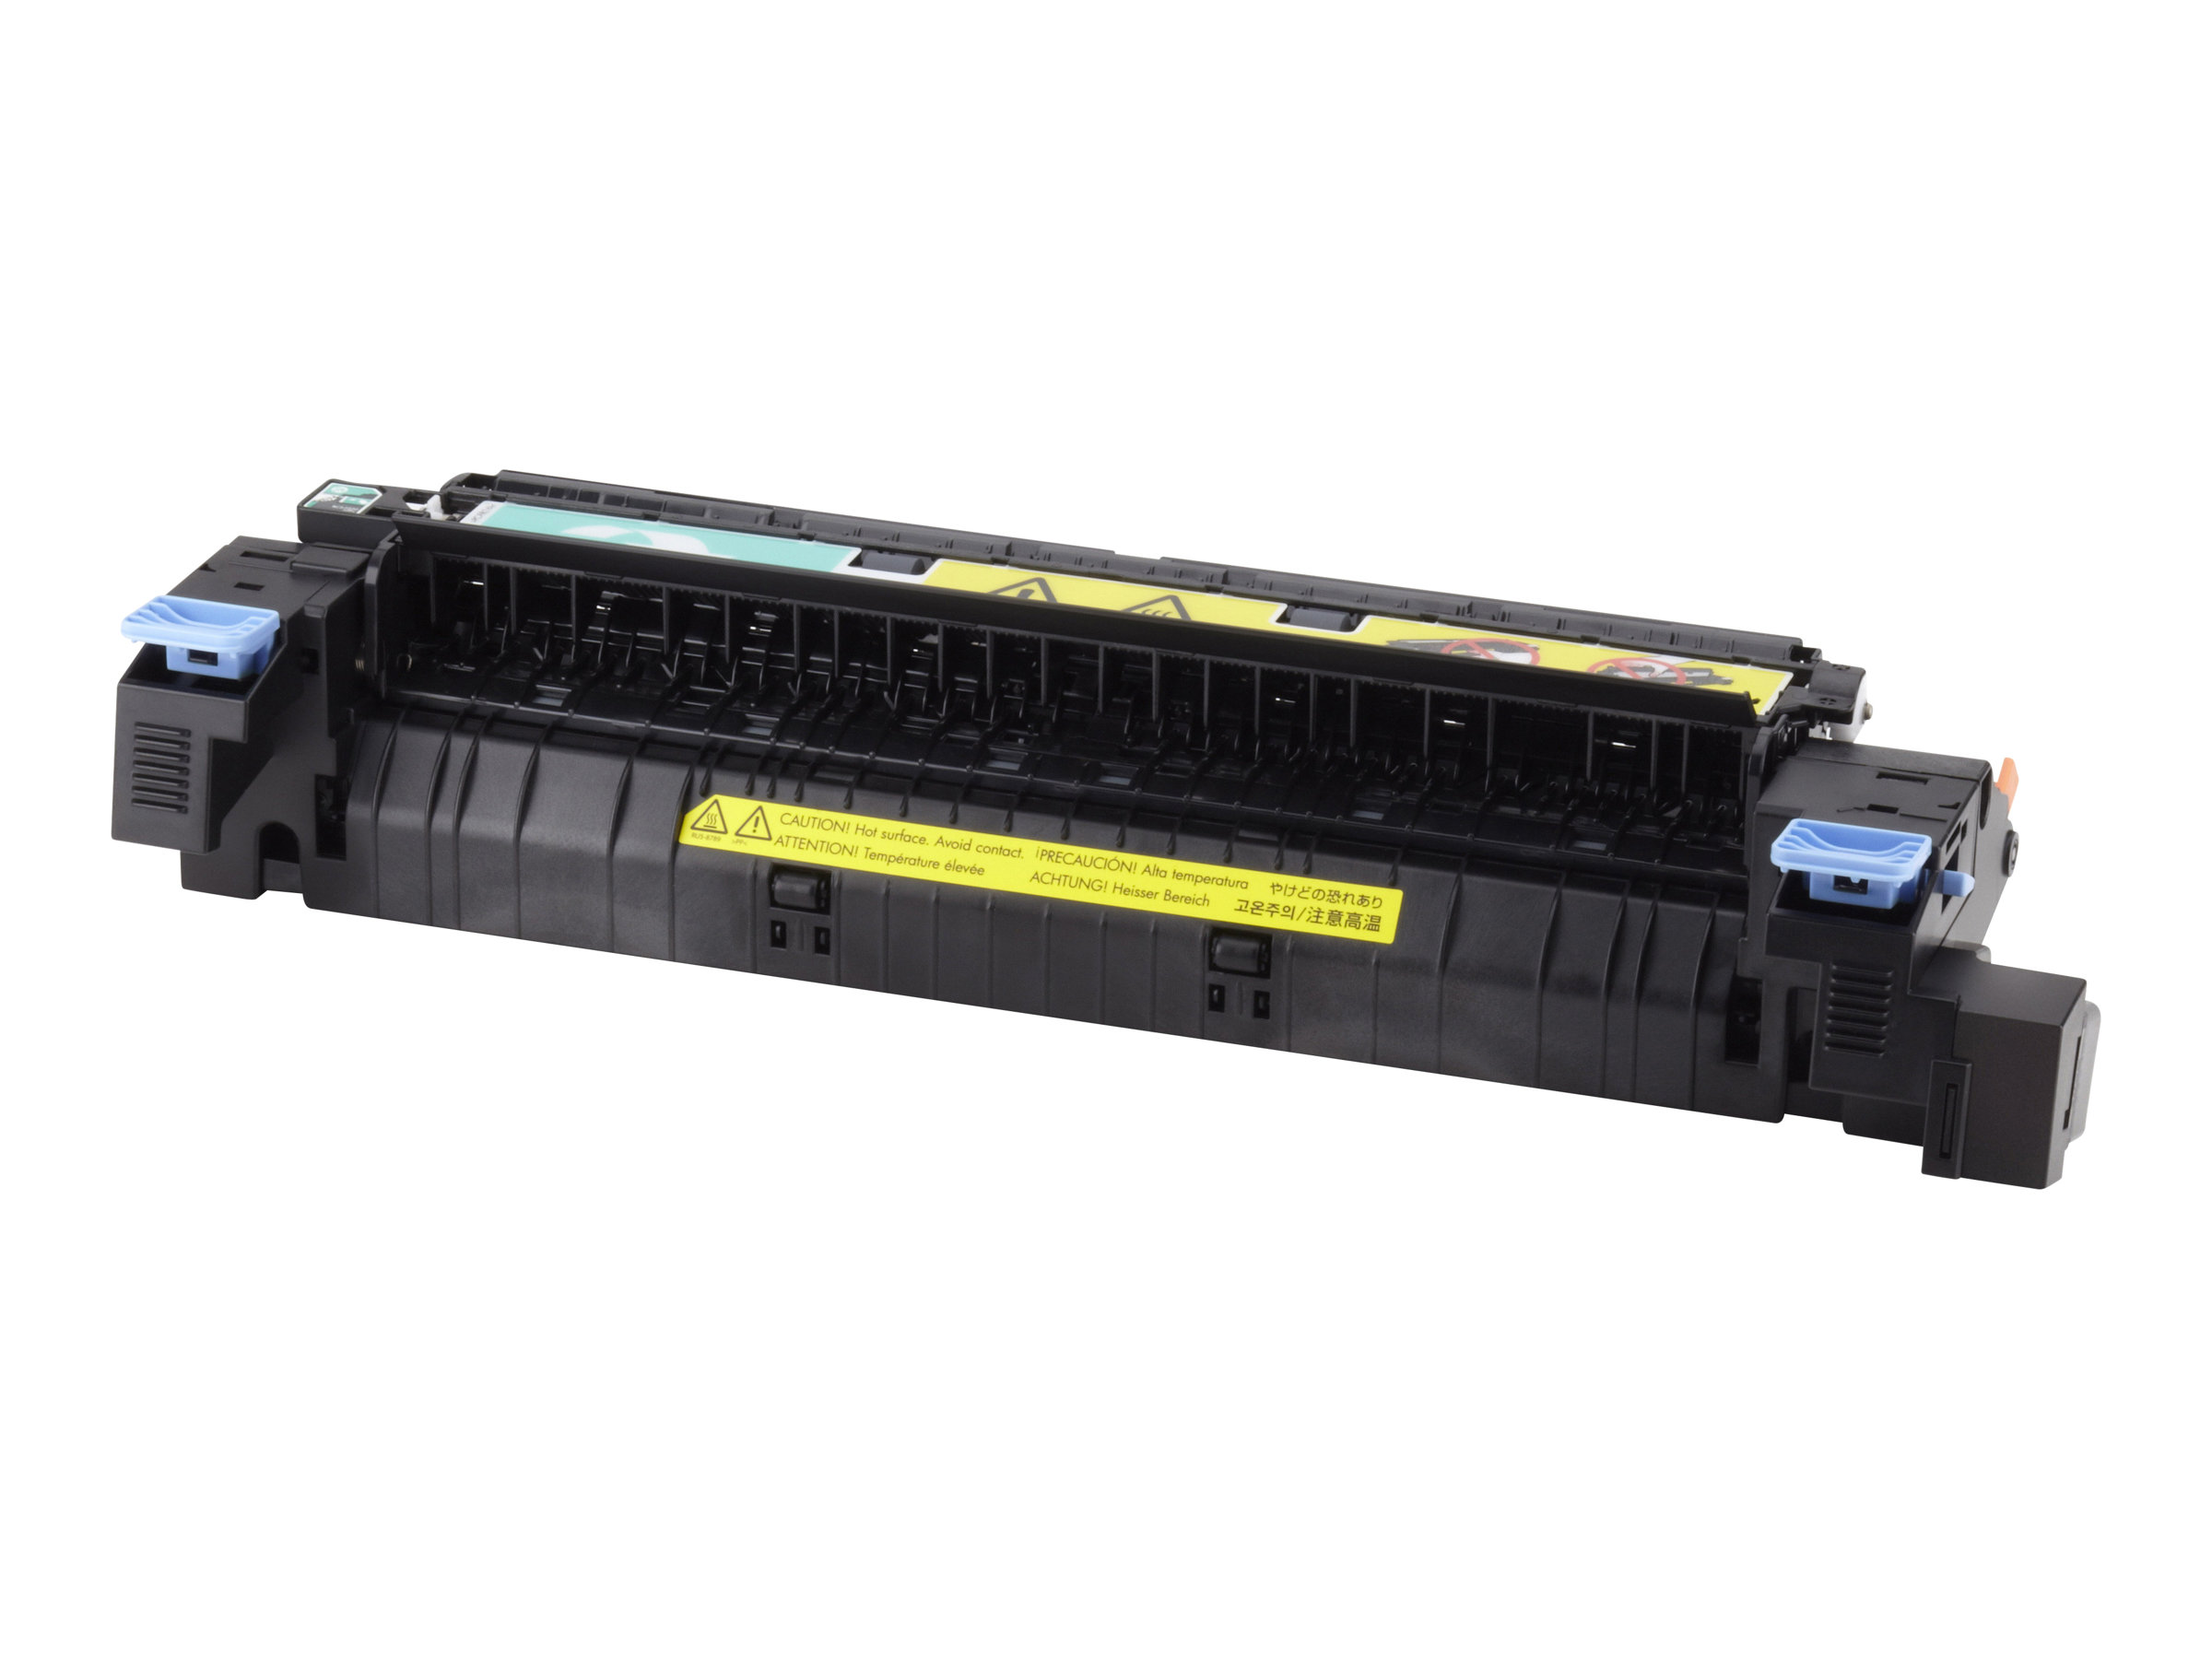 HP - (220 V) - 1 - Wartungskit - für LaserJet Enterprise Flow MFP M830; LaserJet Managed Flow MFP M830